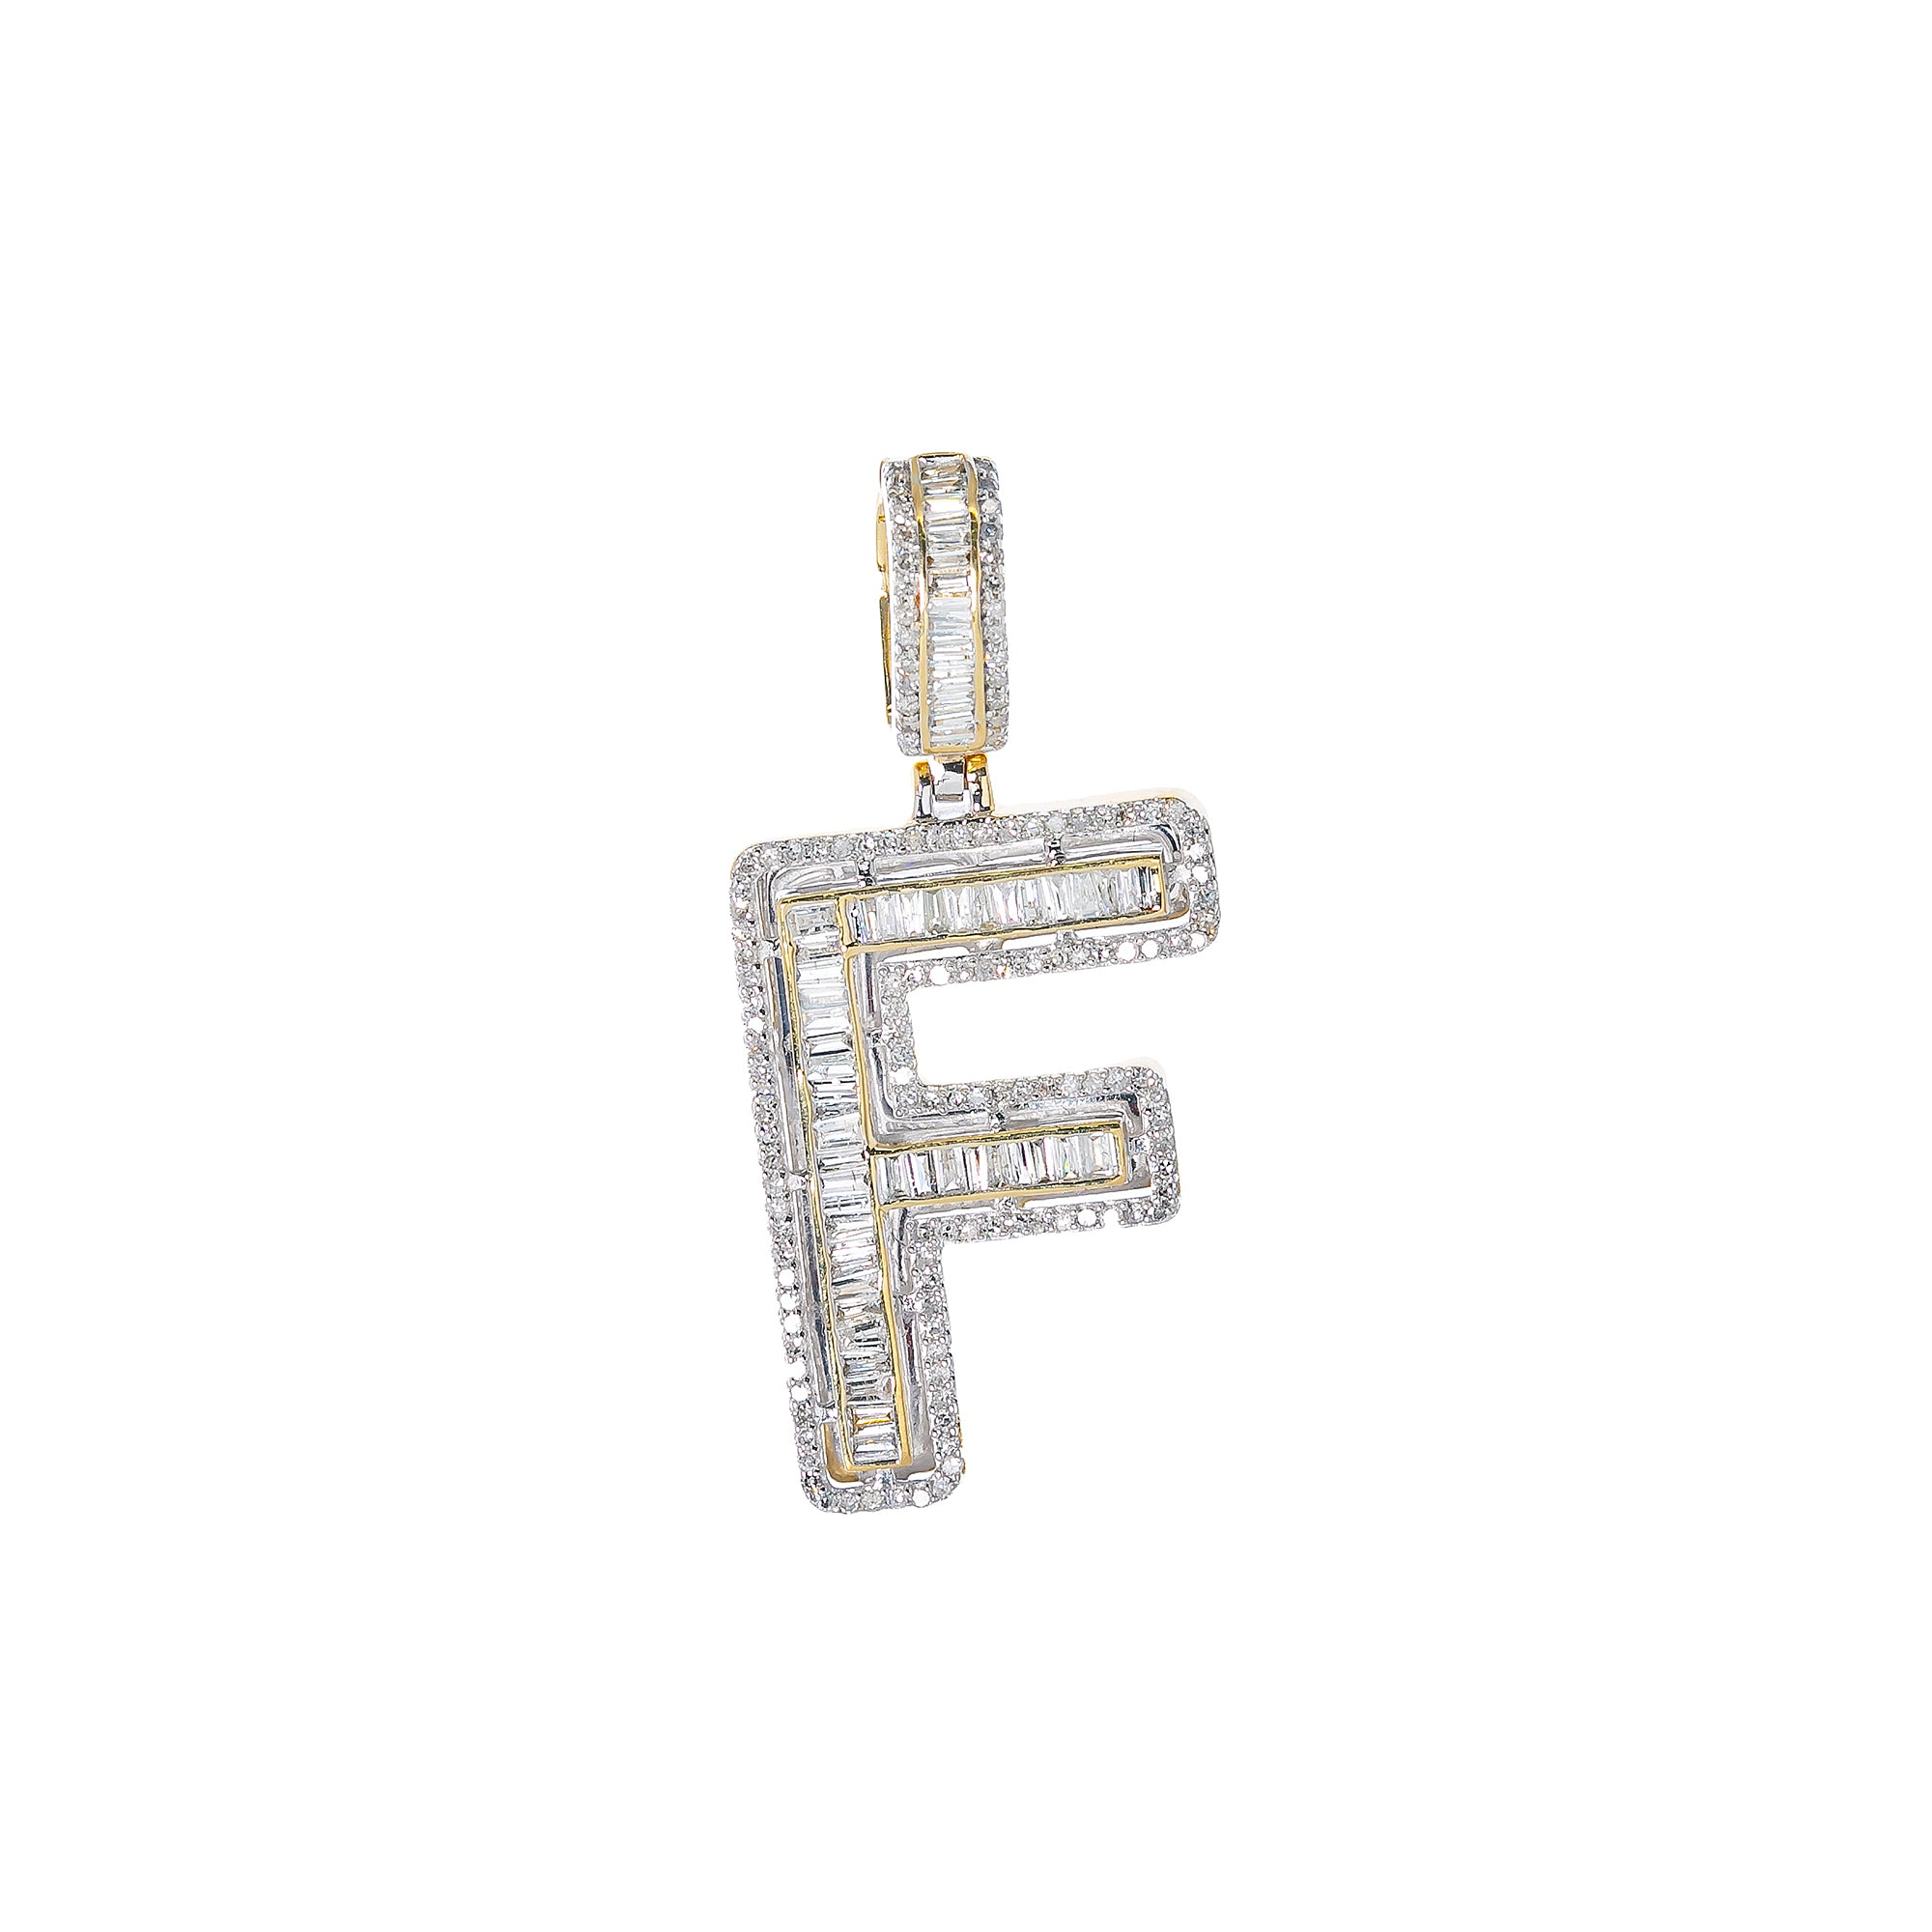 14K YELLOW GOLD UNISEX LETTER F WITH 0.94 CT DIAMONDS